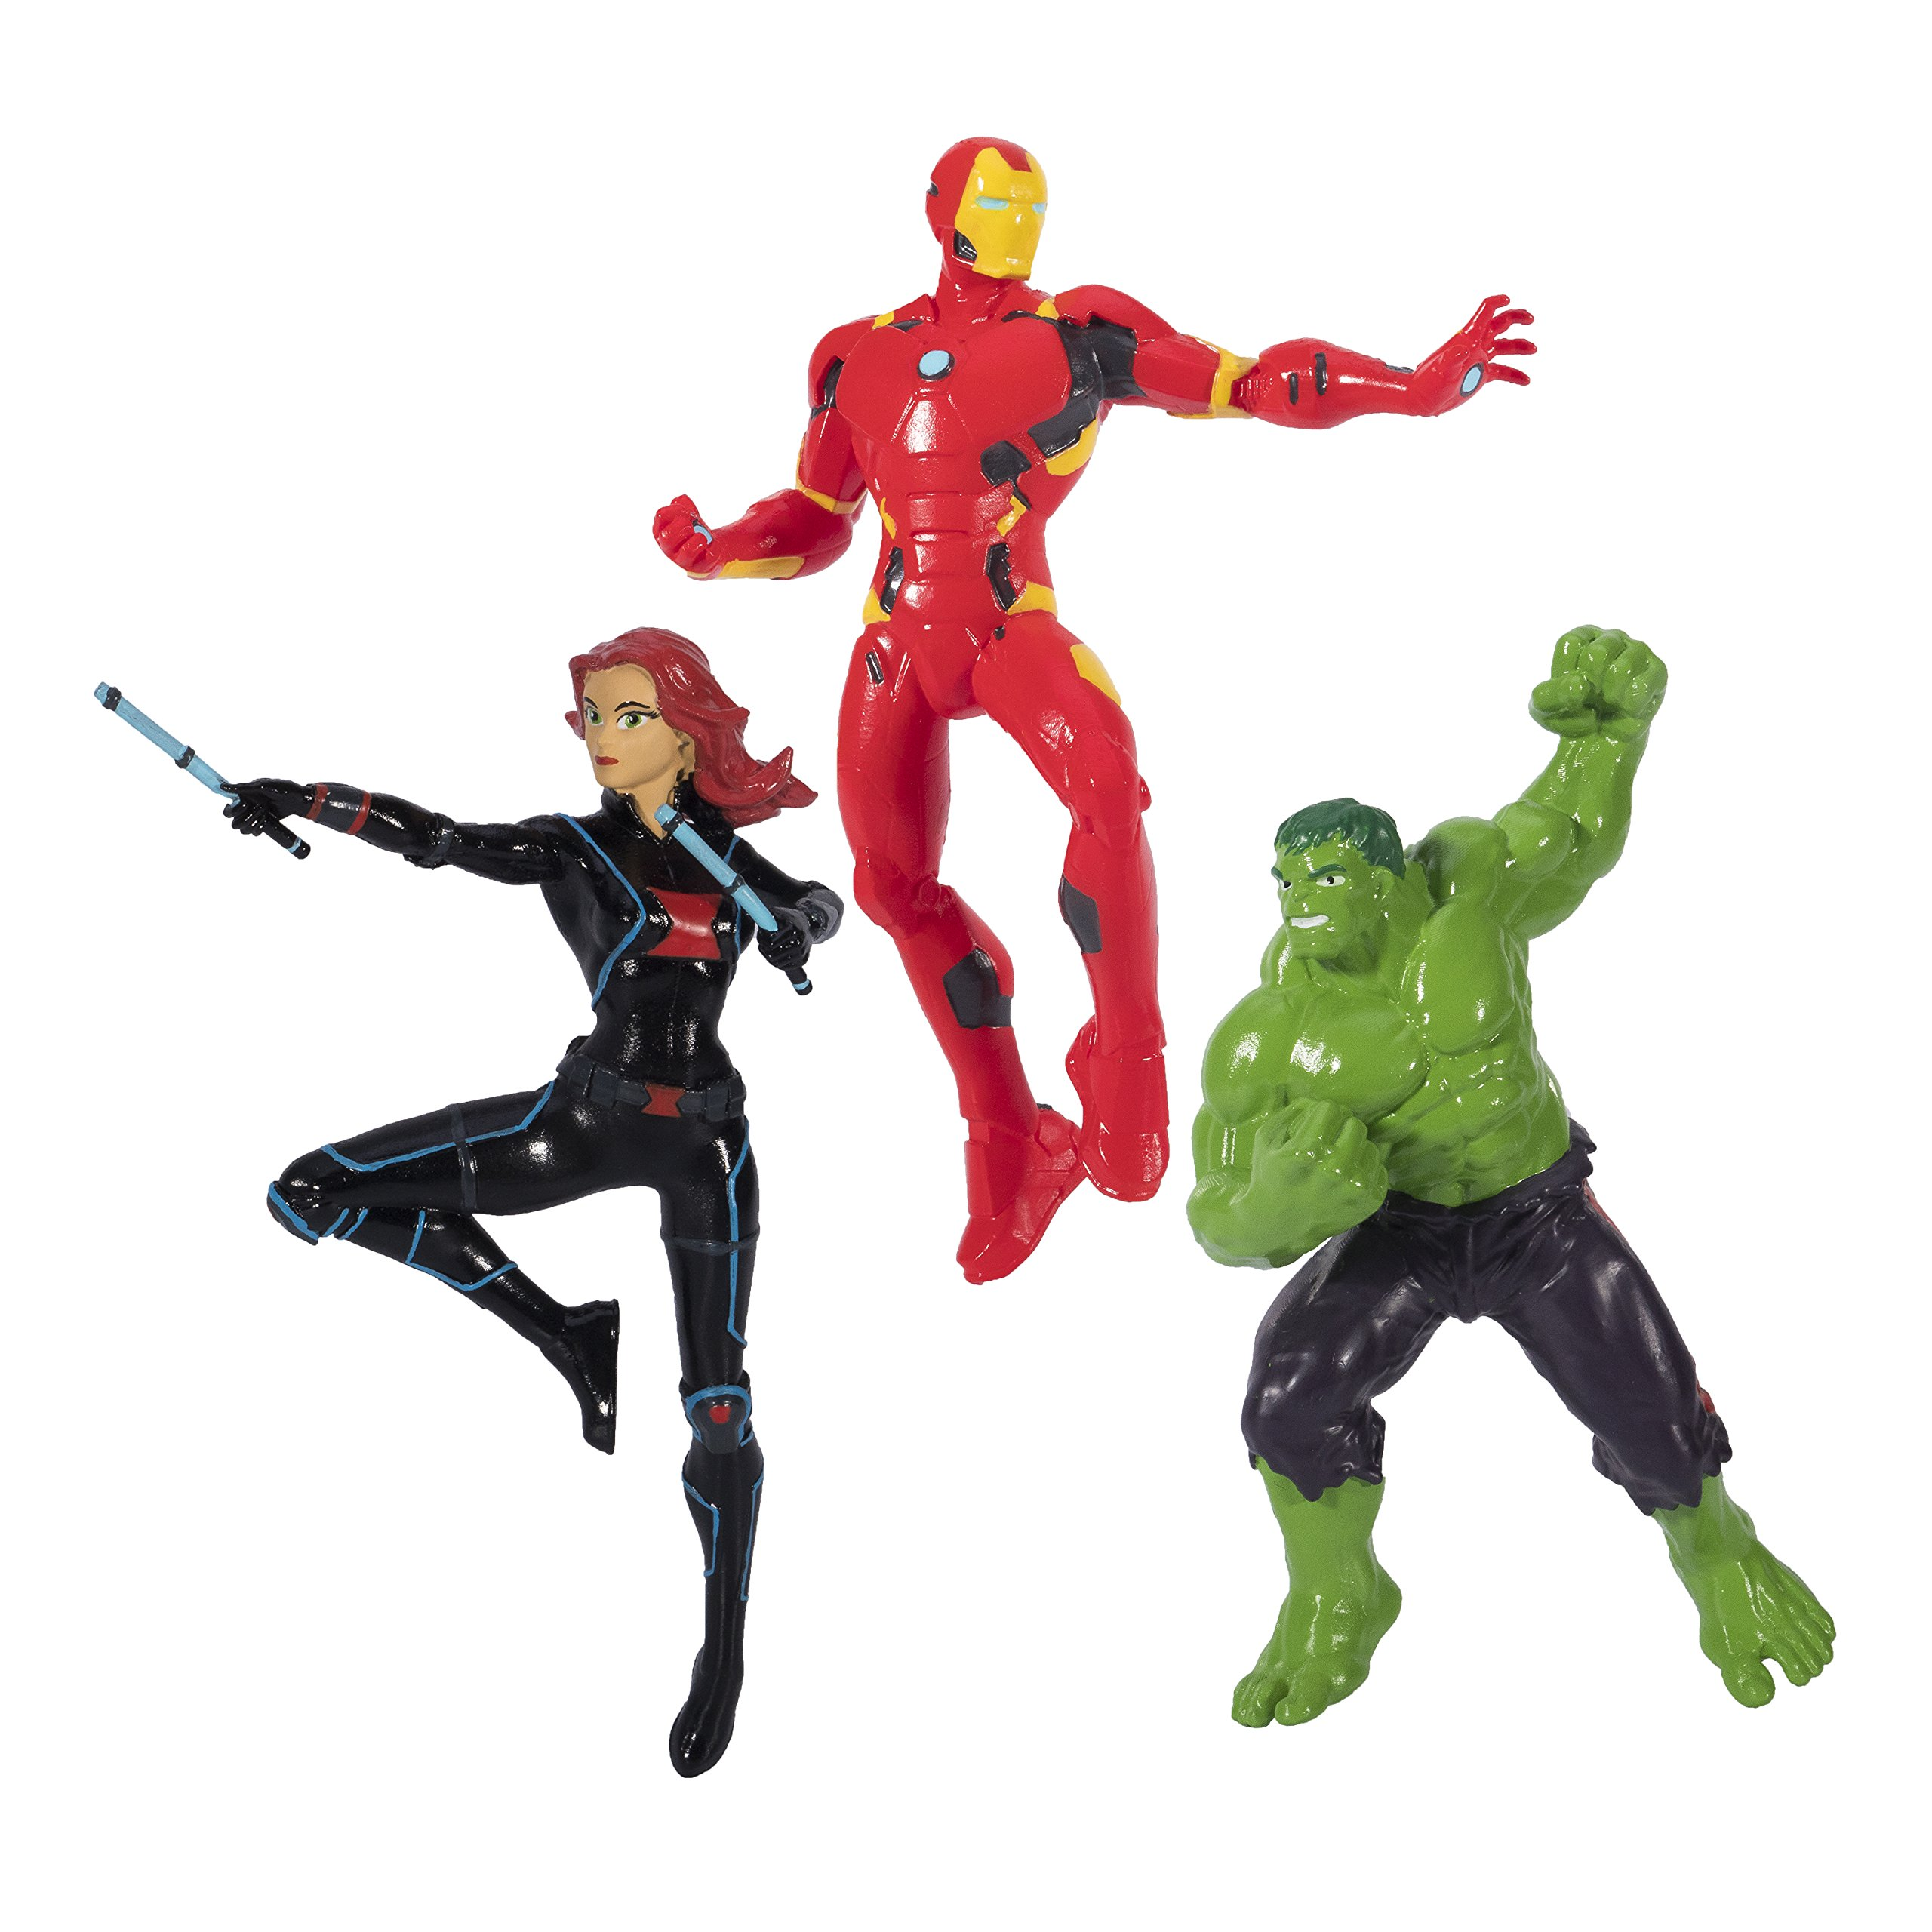 SwimWays Marvel Avengers Dive Characters - Iron Man, Black Widow, and Hulk by SwimWays